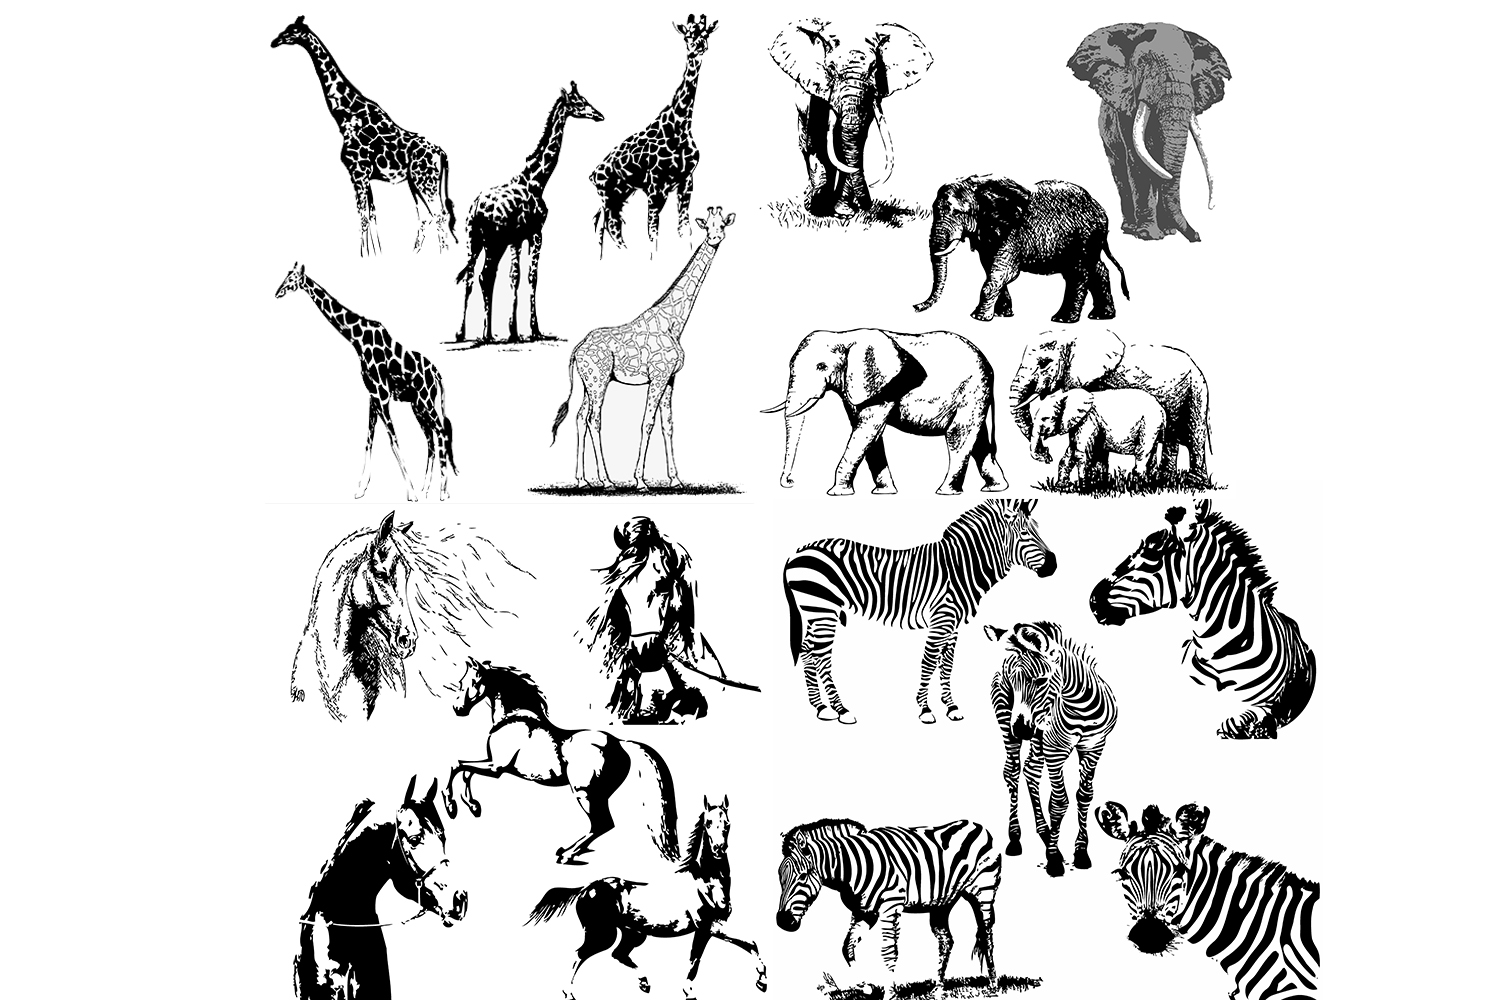 50 wild animals hand drawn silhouette vector illustrations example image 6